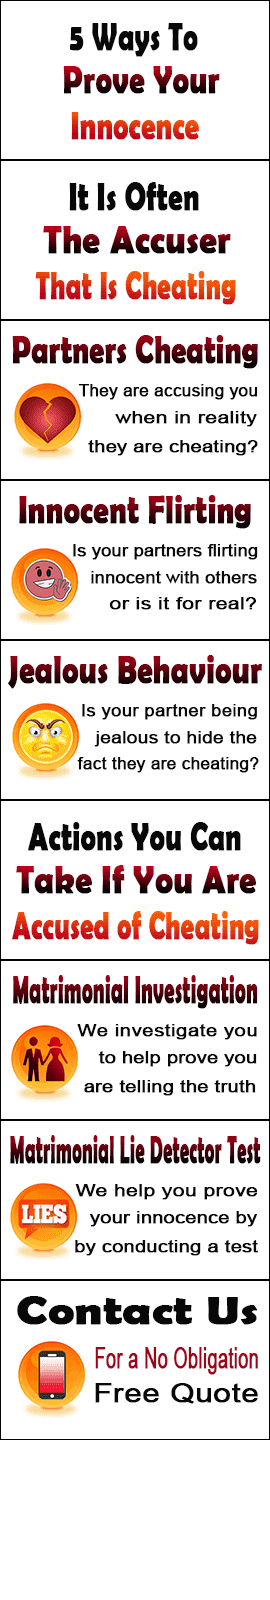 5 Ways To Show Your Innocence In Ipswich When Accused Of Cheating